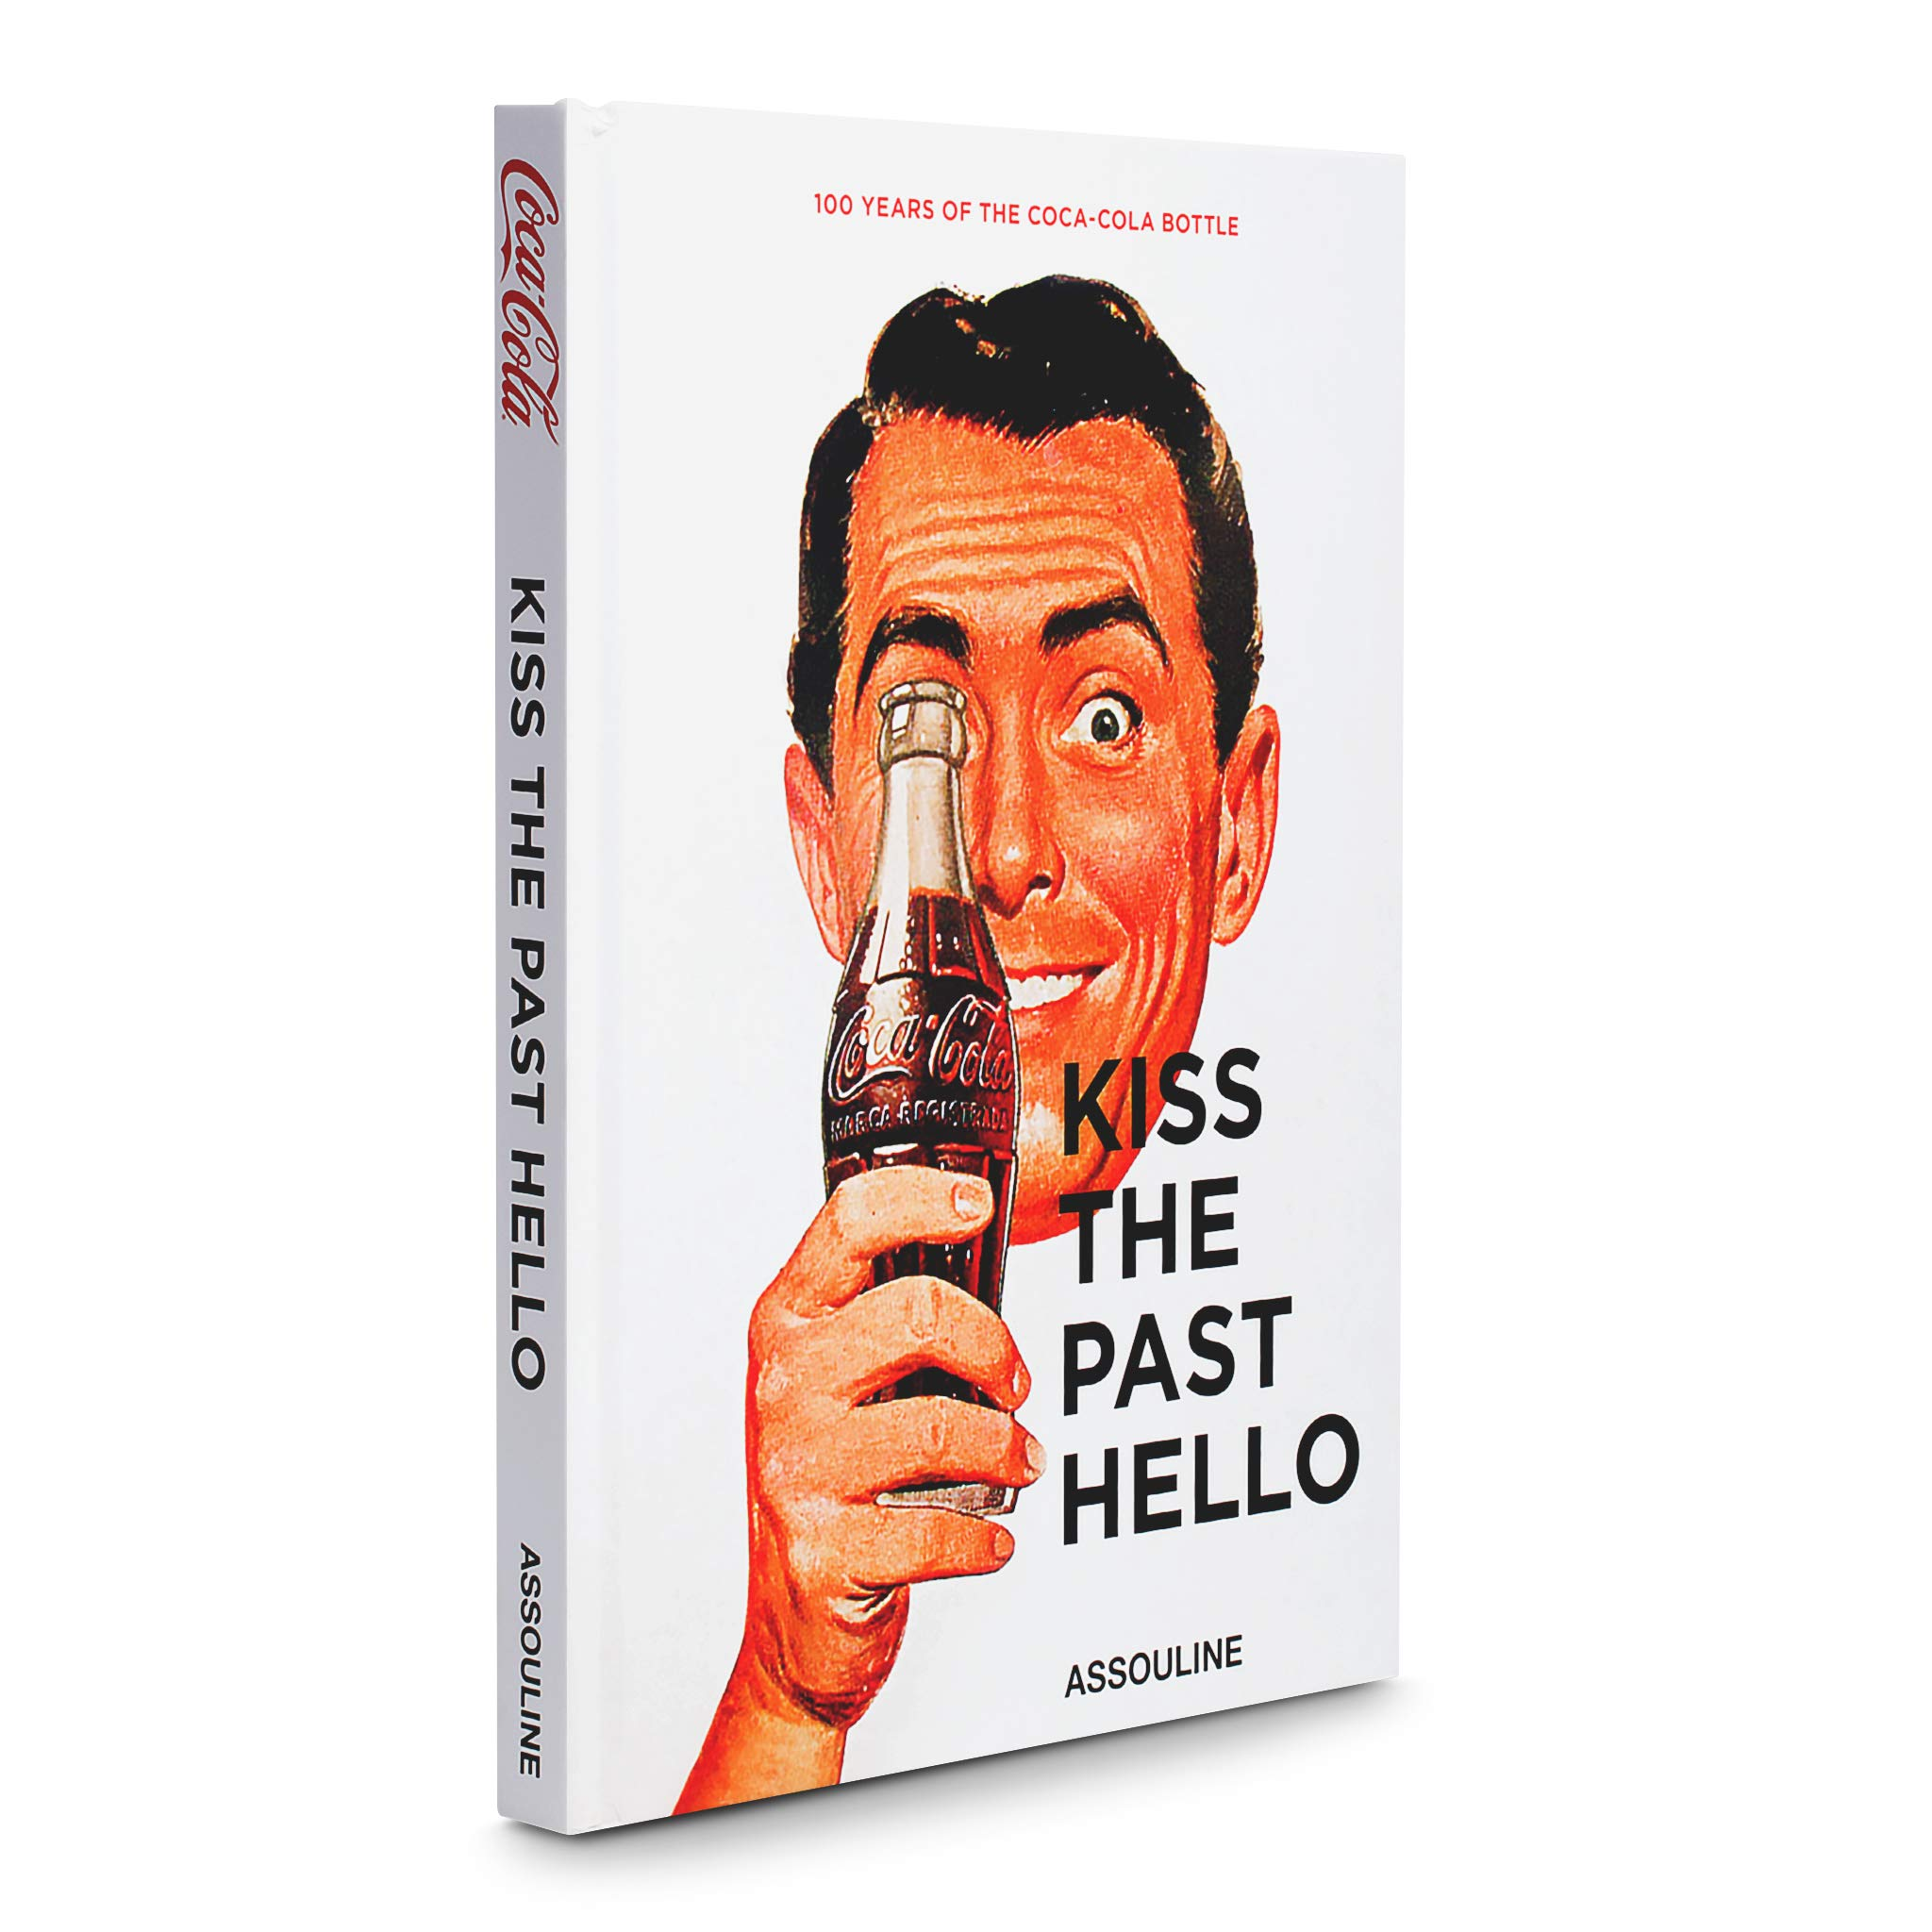 Kiss The Past Hello Spanish Language: 100 Years of the Coca-Cola Contour Bottle (Trade) (Spanish Edition) PDF